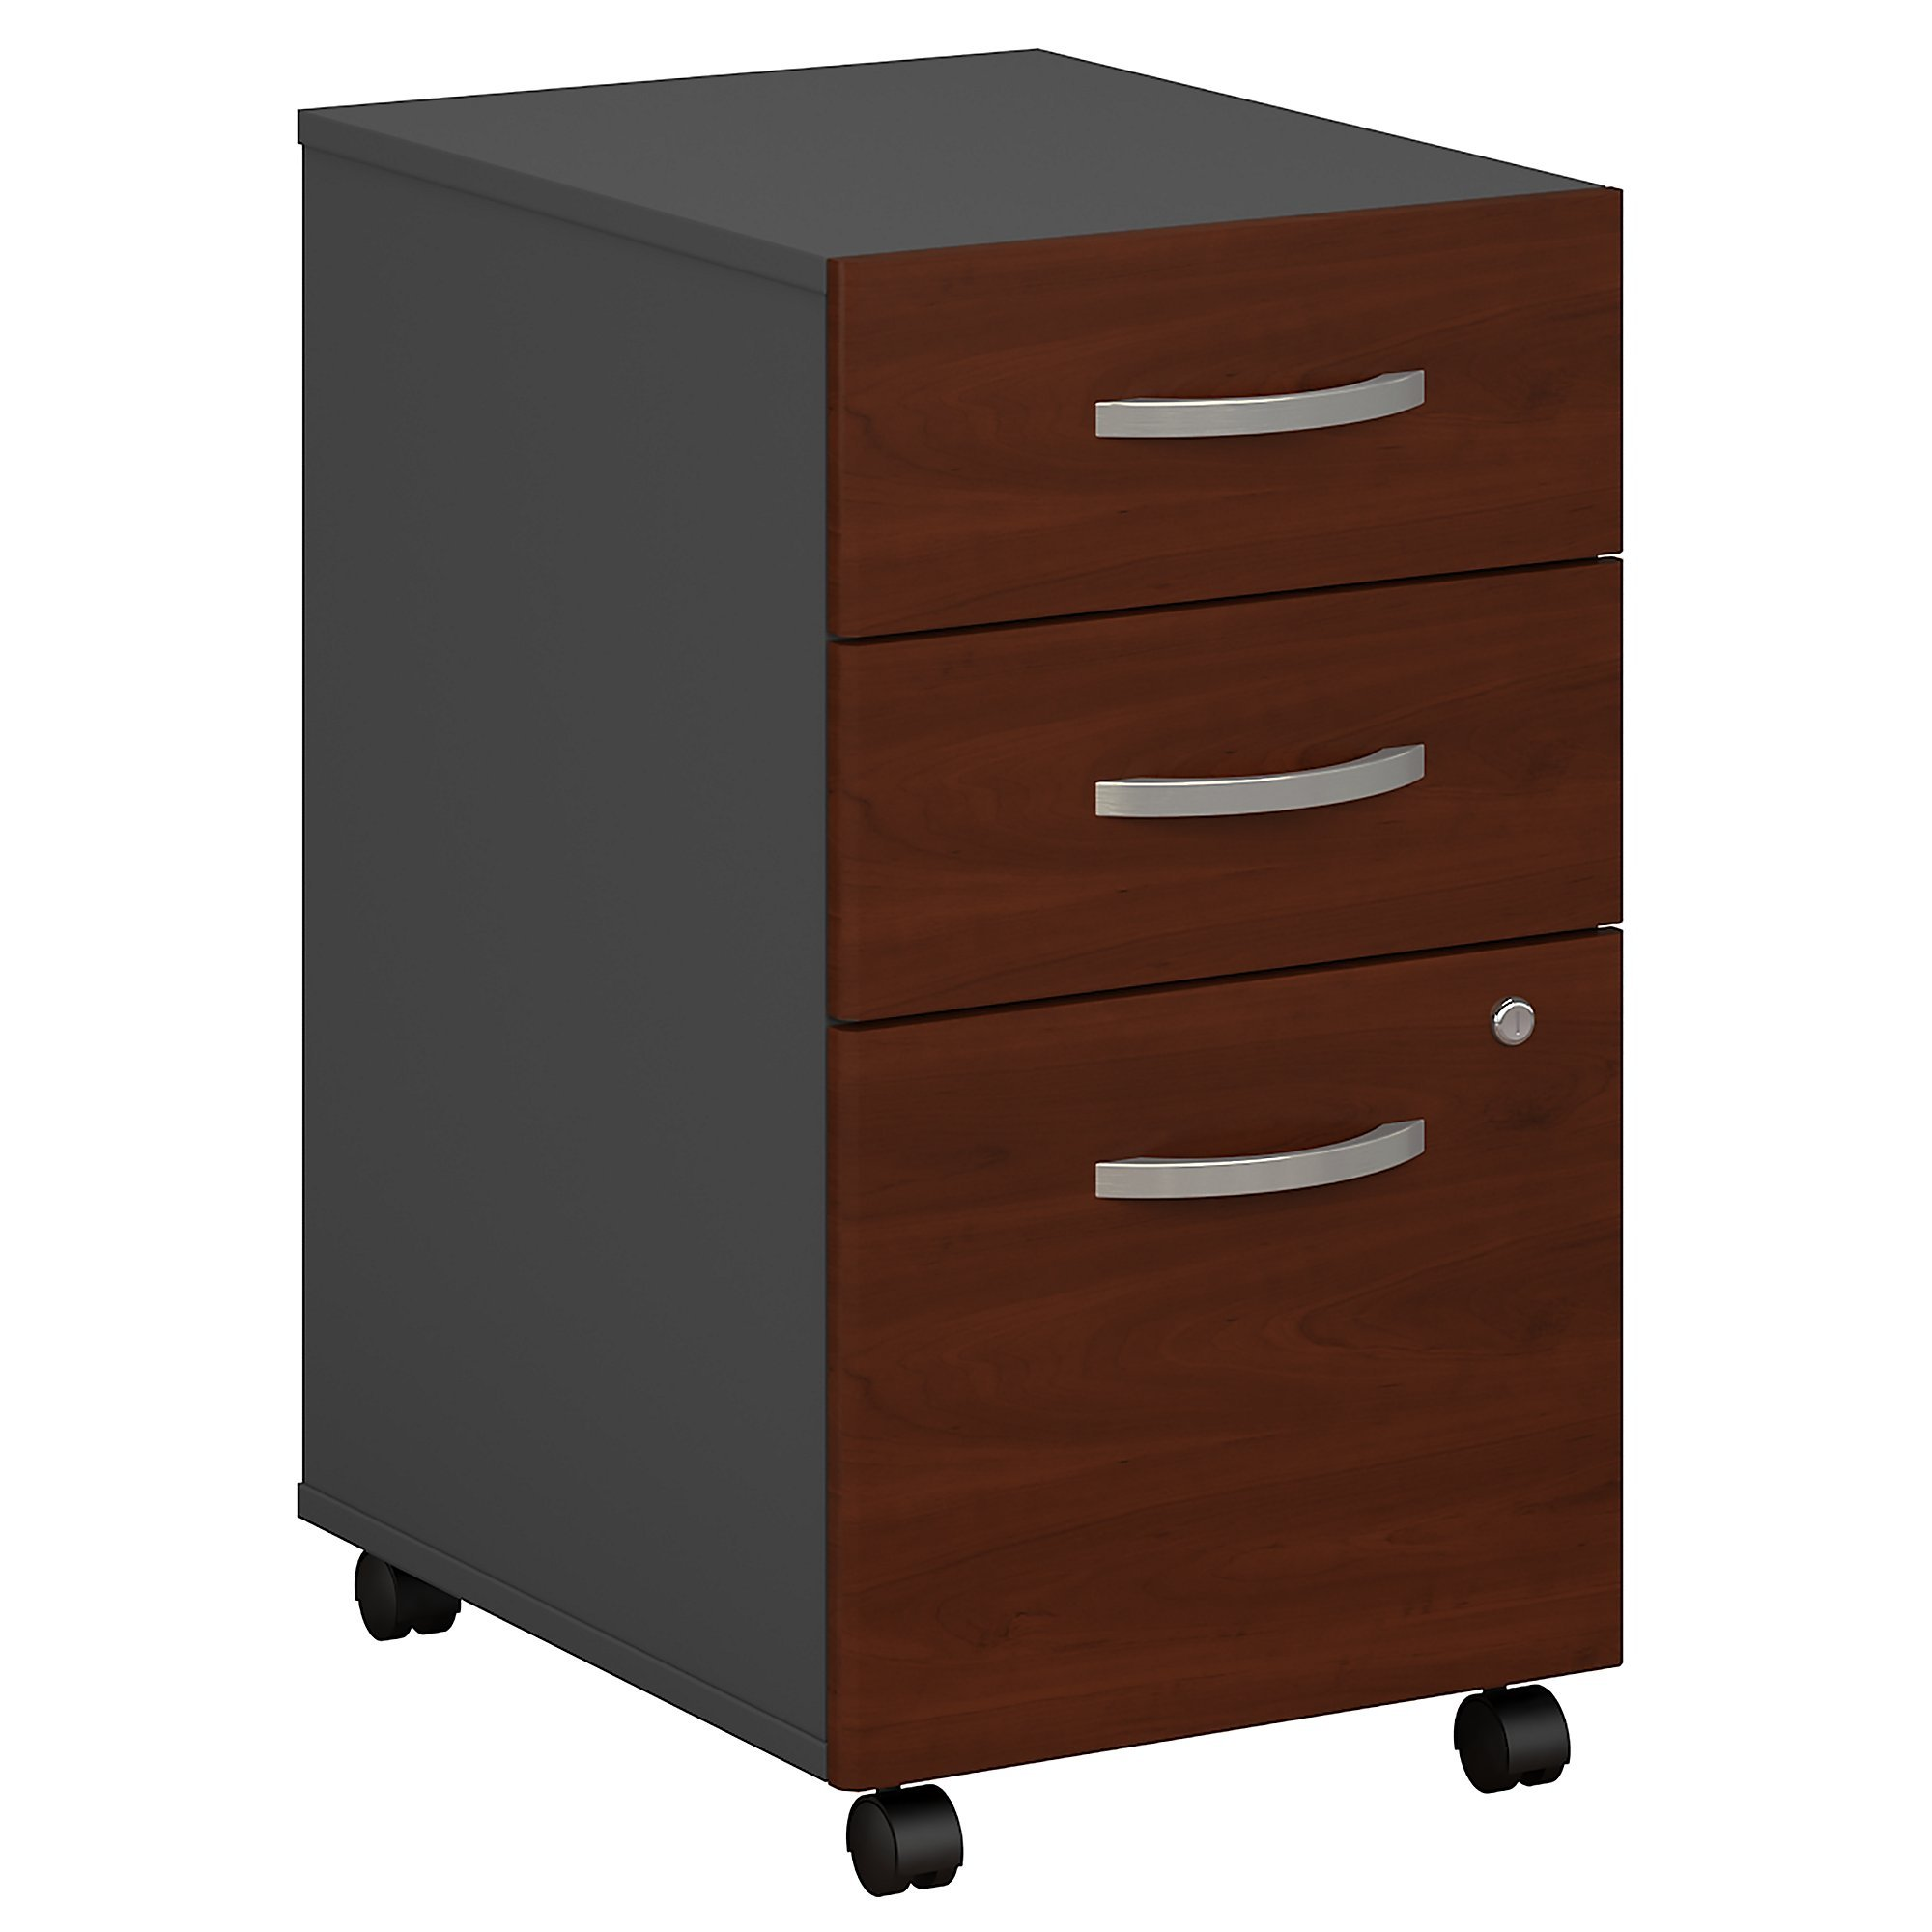 Bush Business Furniture Series C 3 Drawer Mobile File Cabinet in Hansen Cherry by Bush Business Furniture